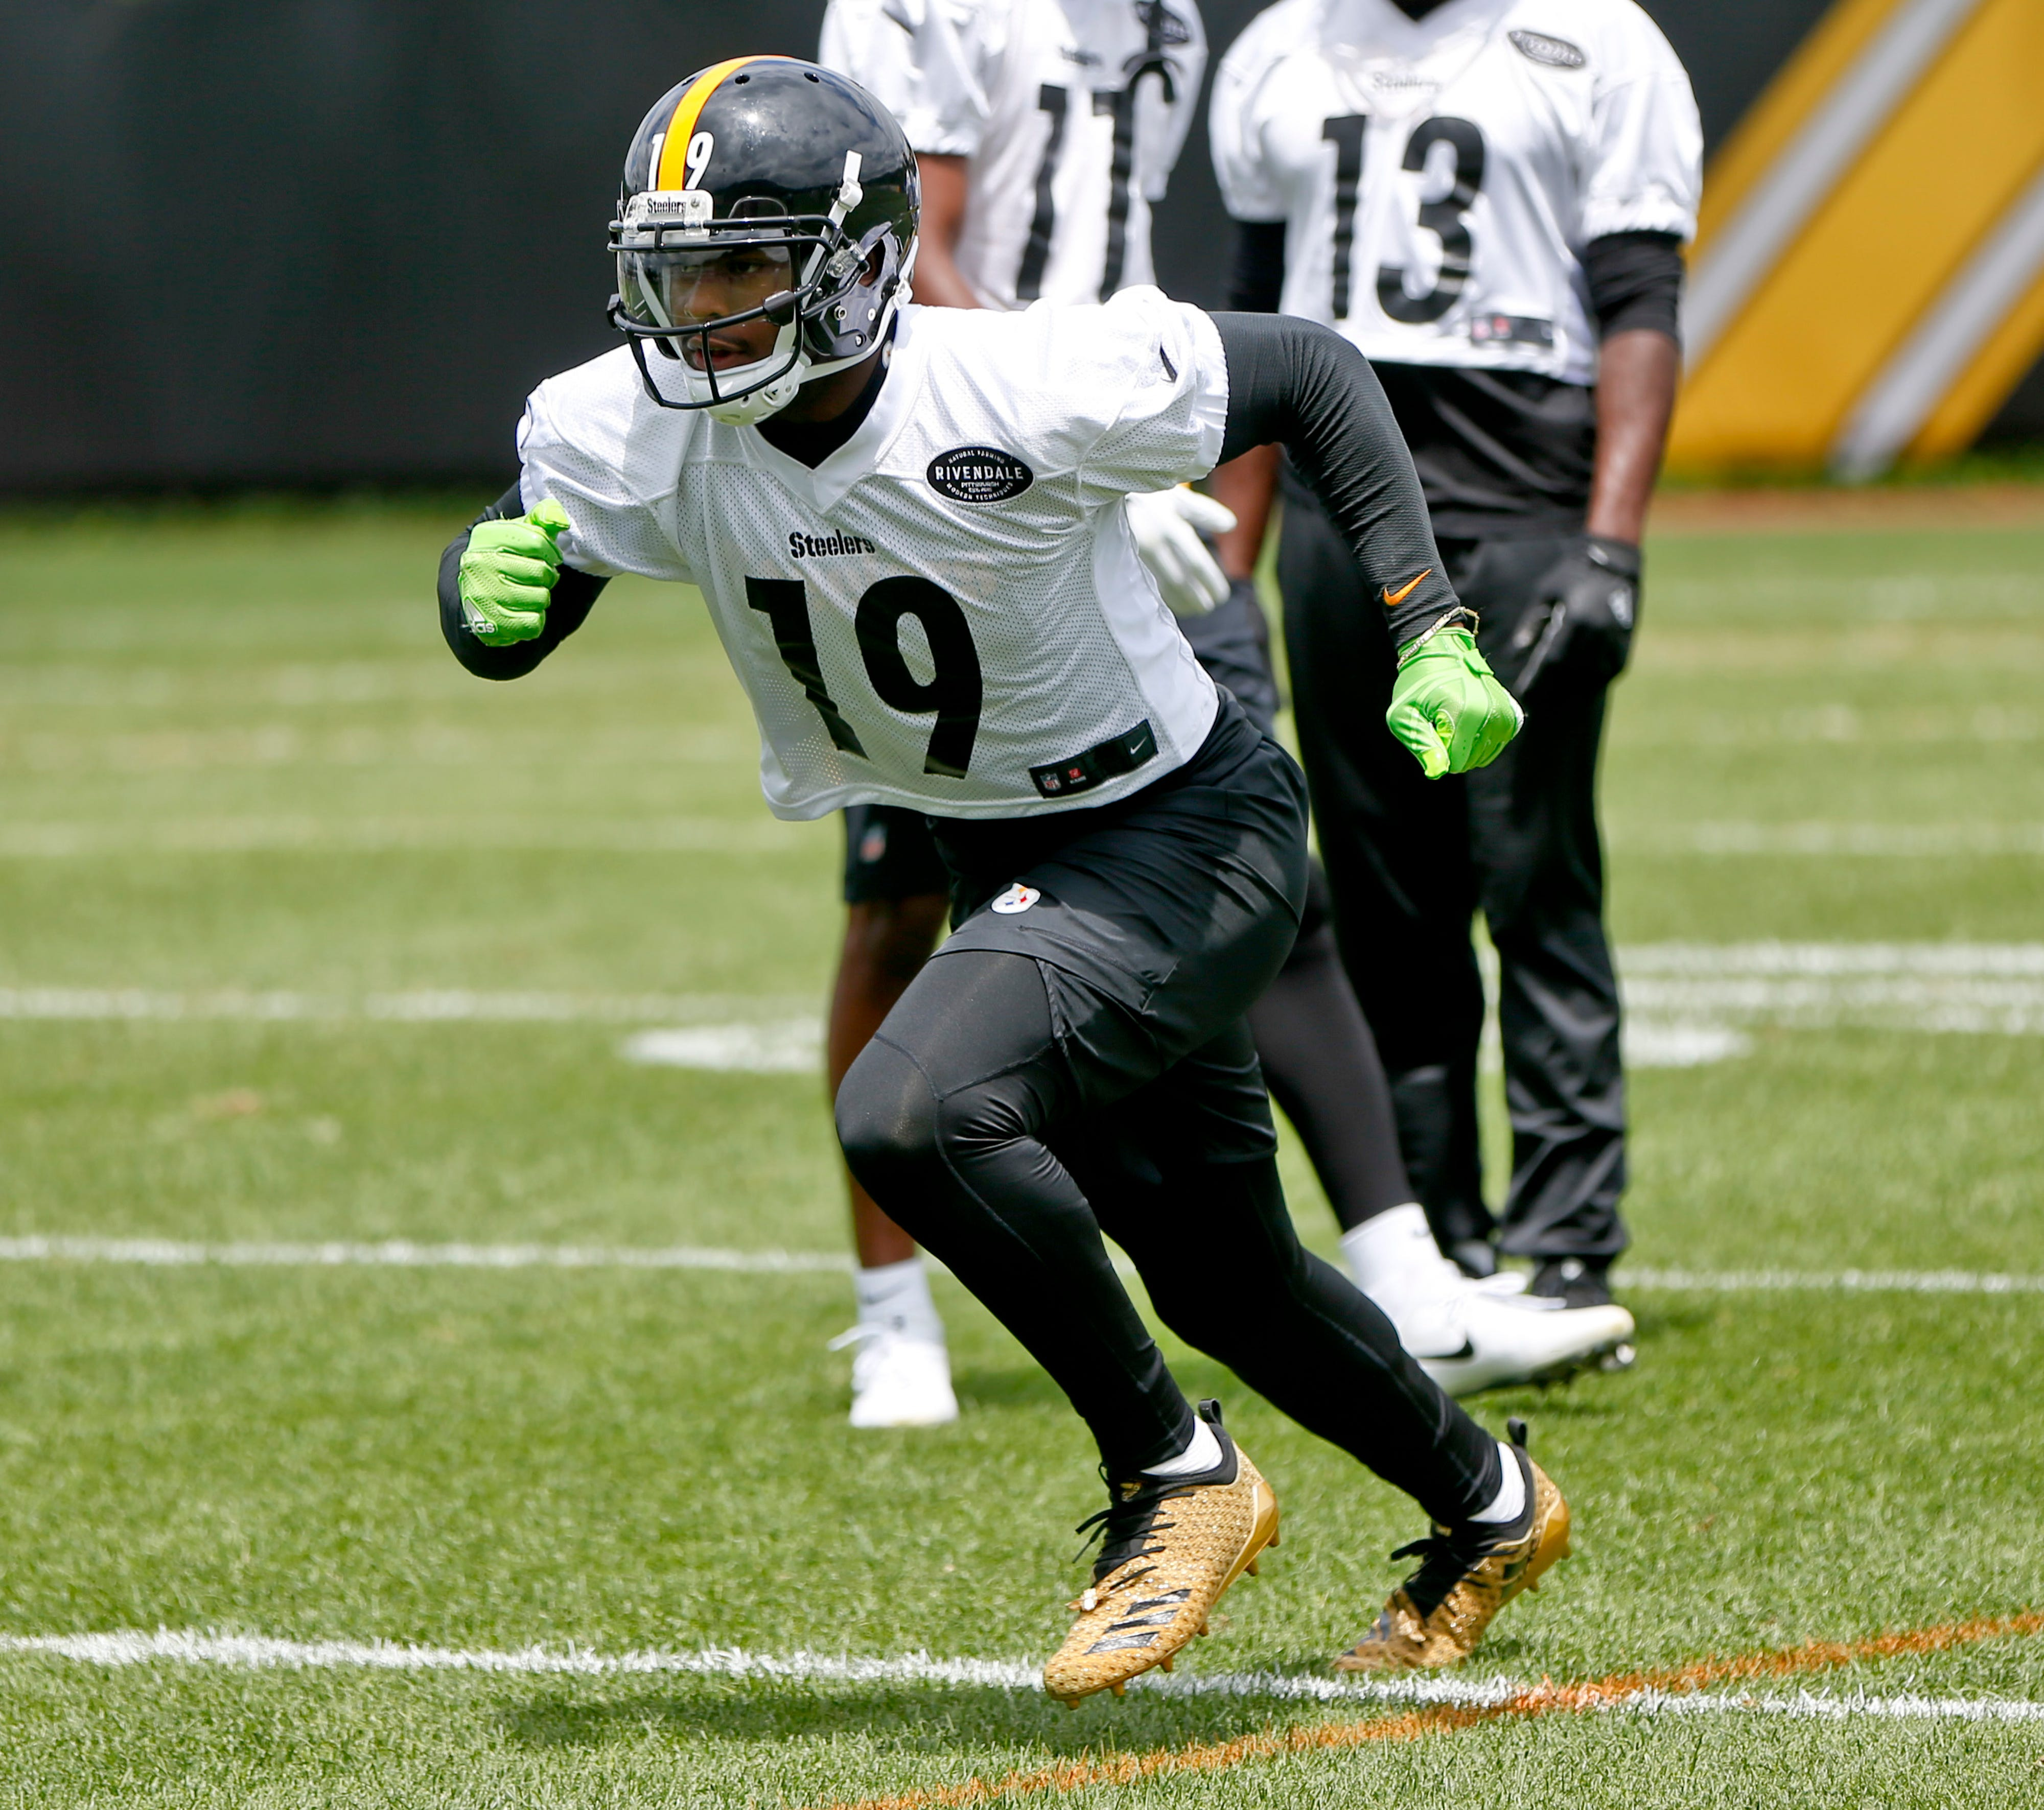 Steelers WR Smith-Schuster eyes bigger role in Year 2